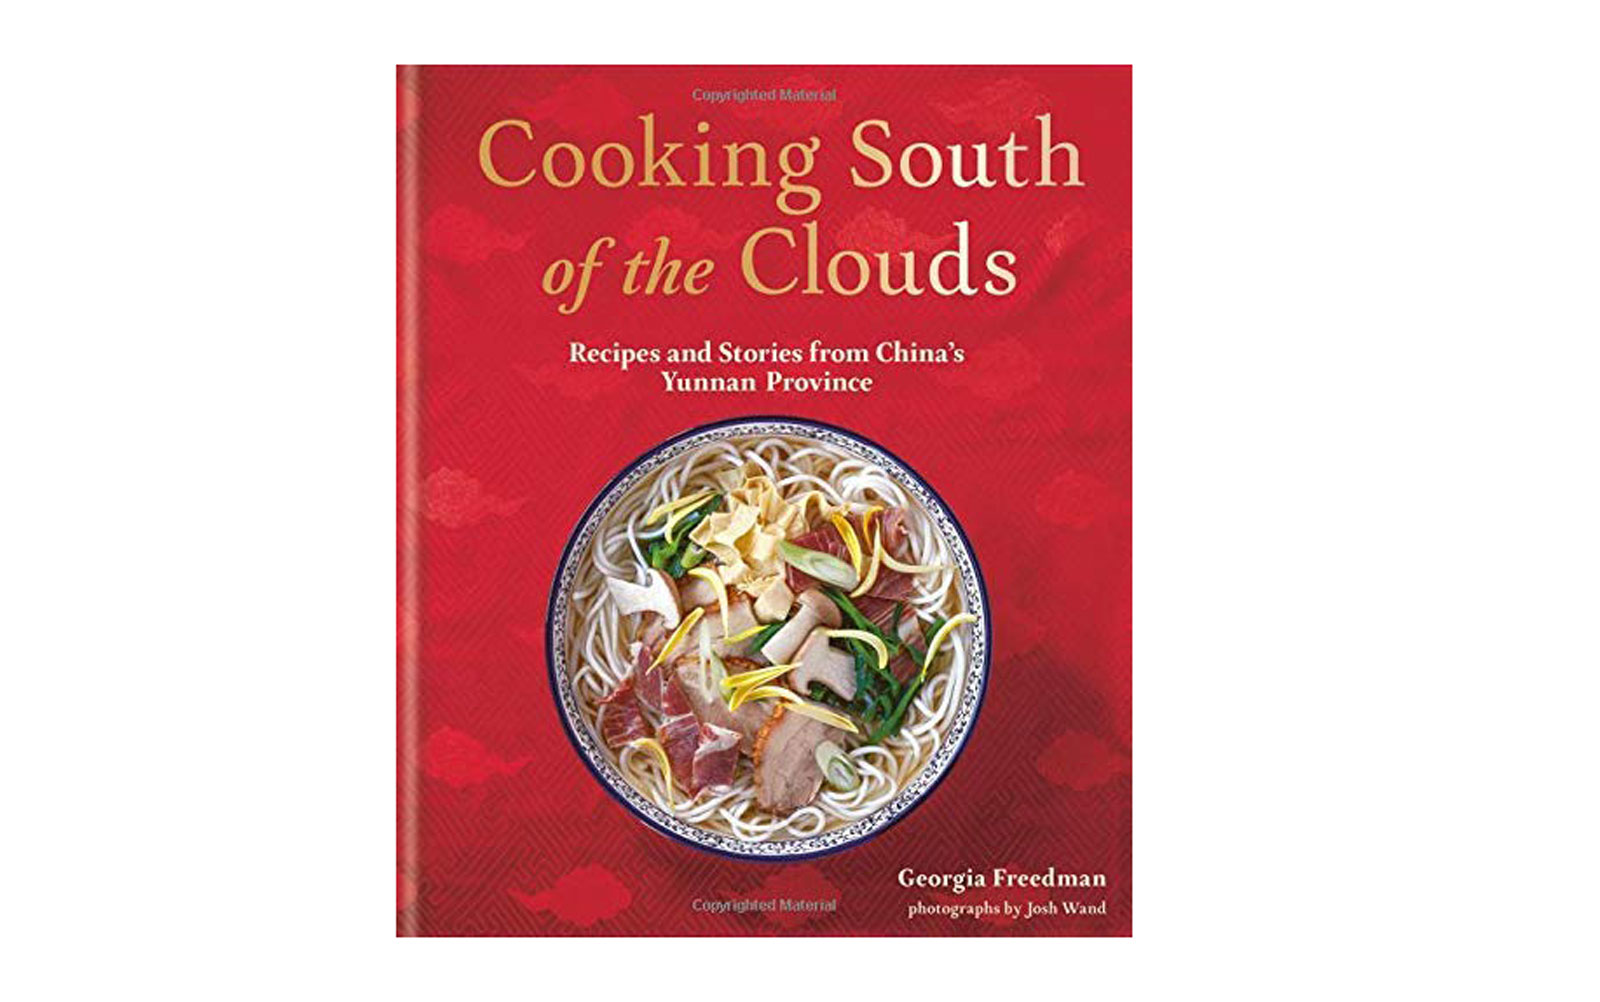 Cooking South of the Clouds Cookbook